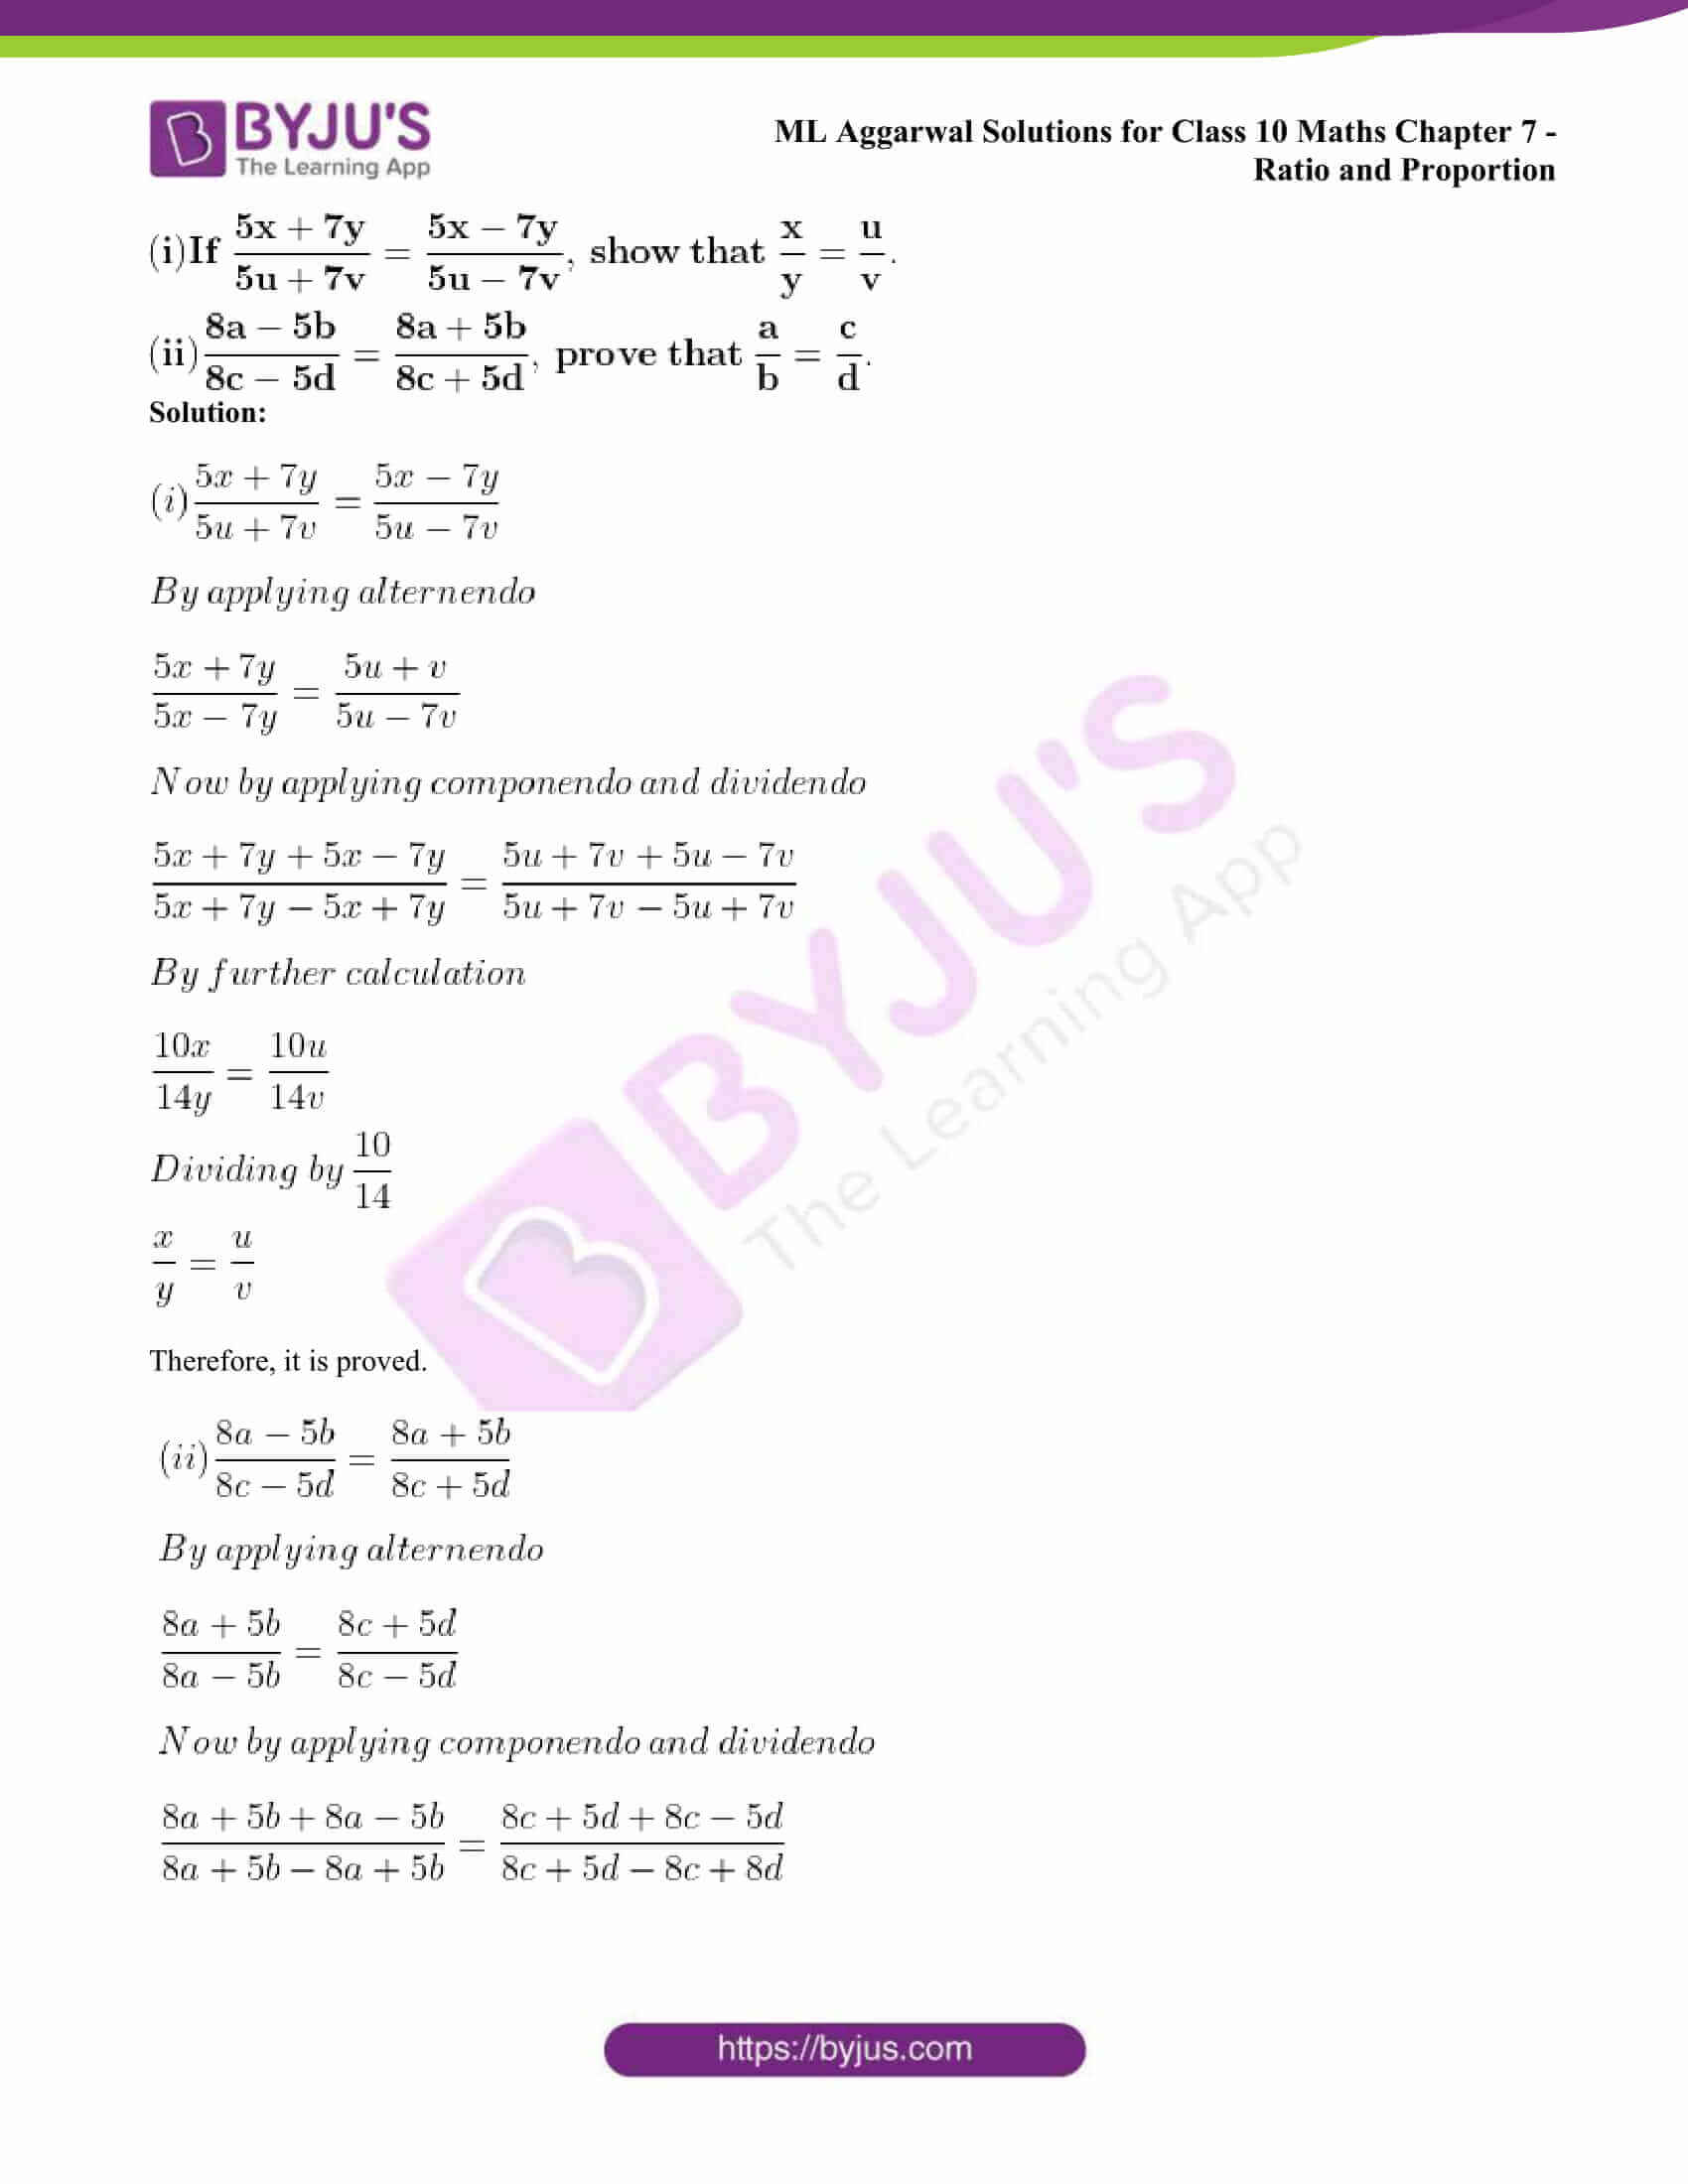 ml aggarwal solutions class 10 maths chapter 7 47